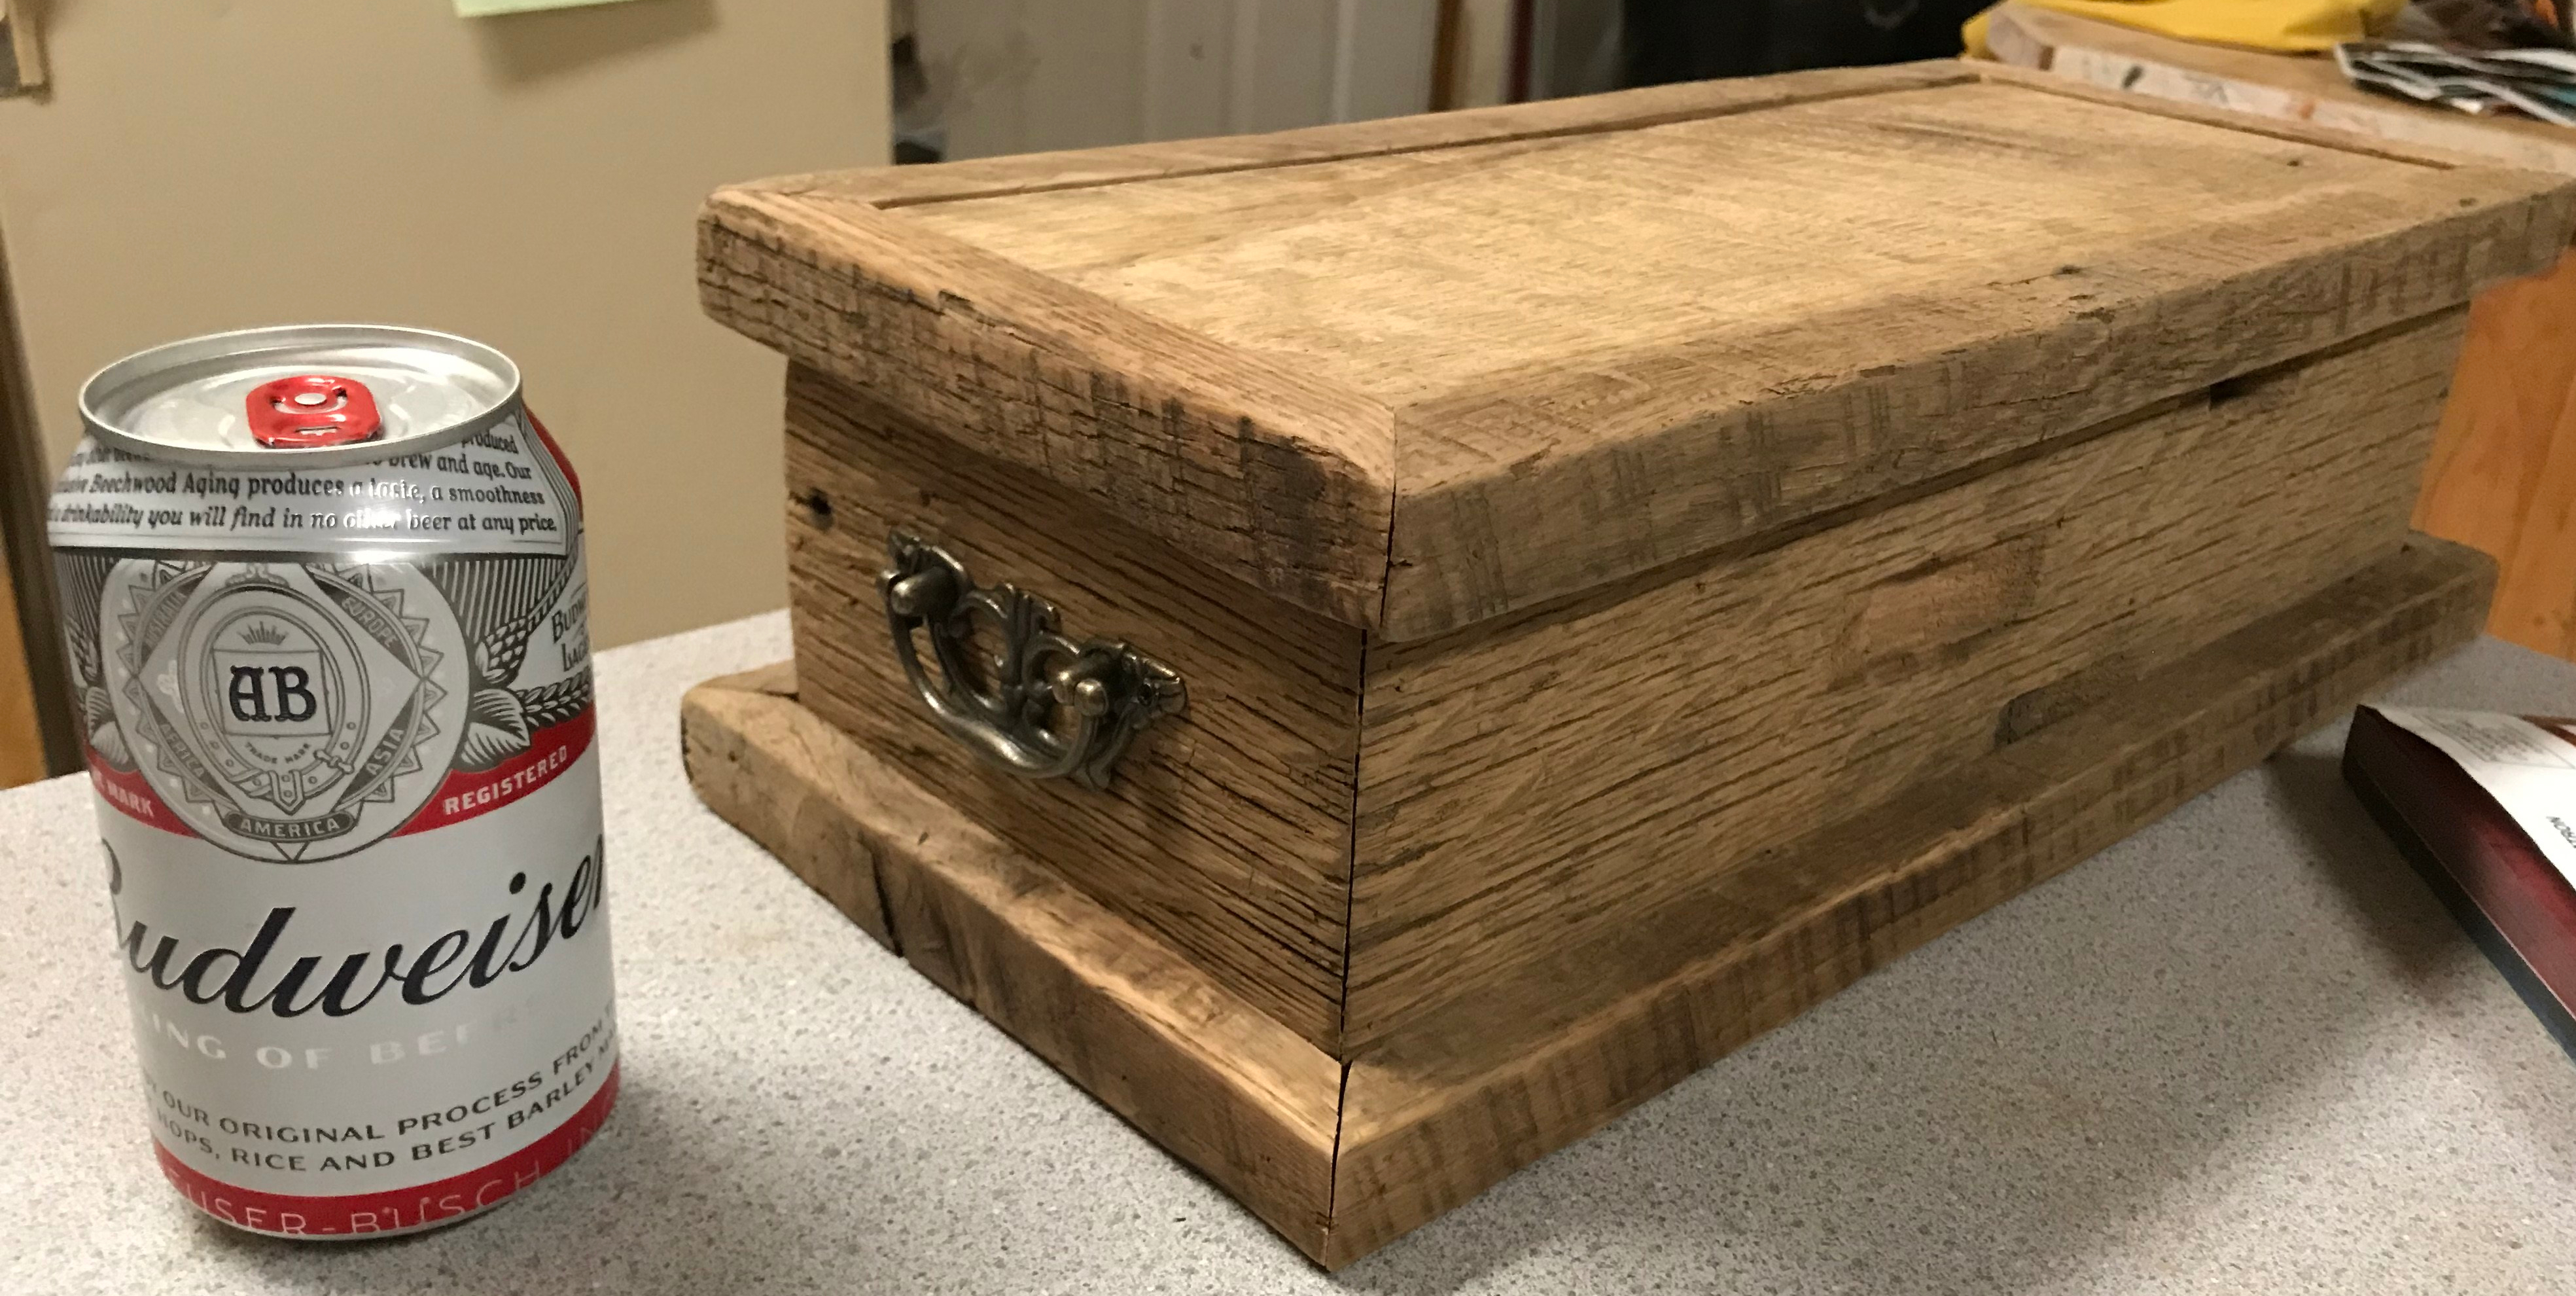 An oak wood box with brass hanging handles sitting next to a can of Budweiser